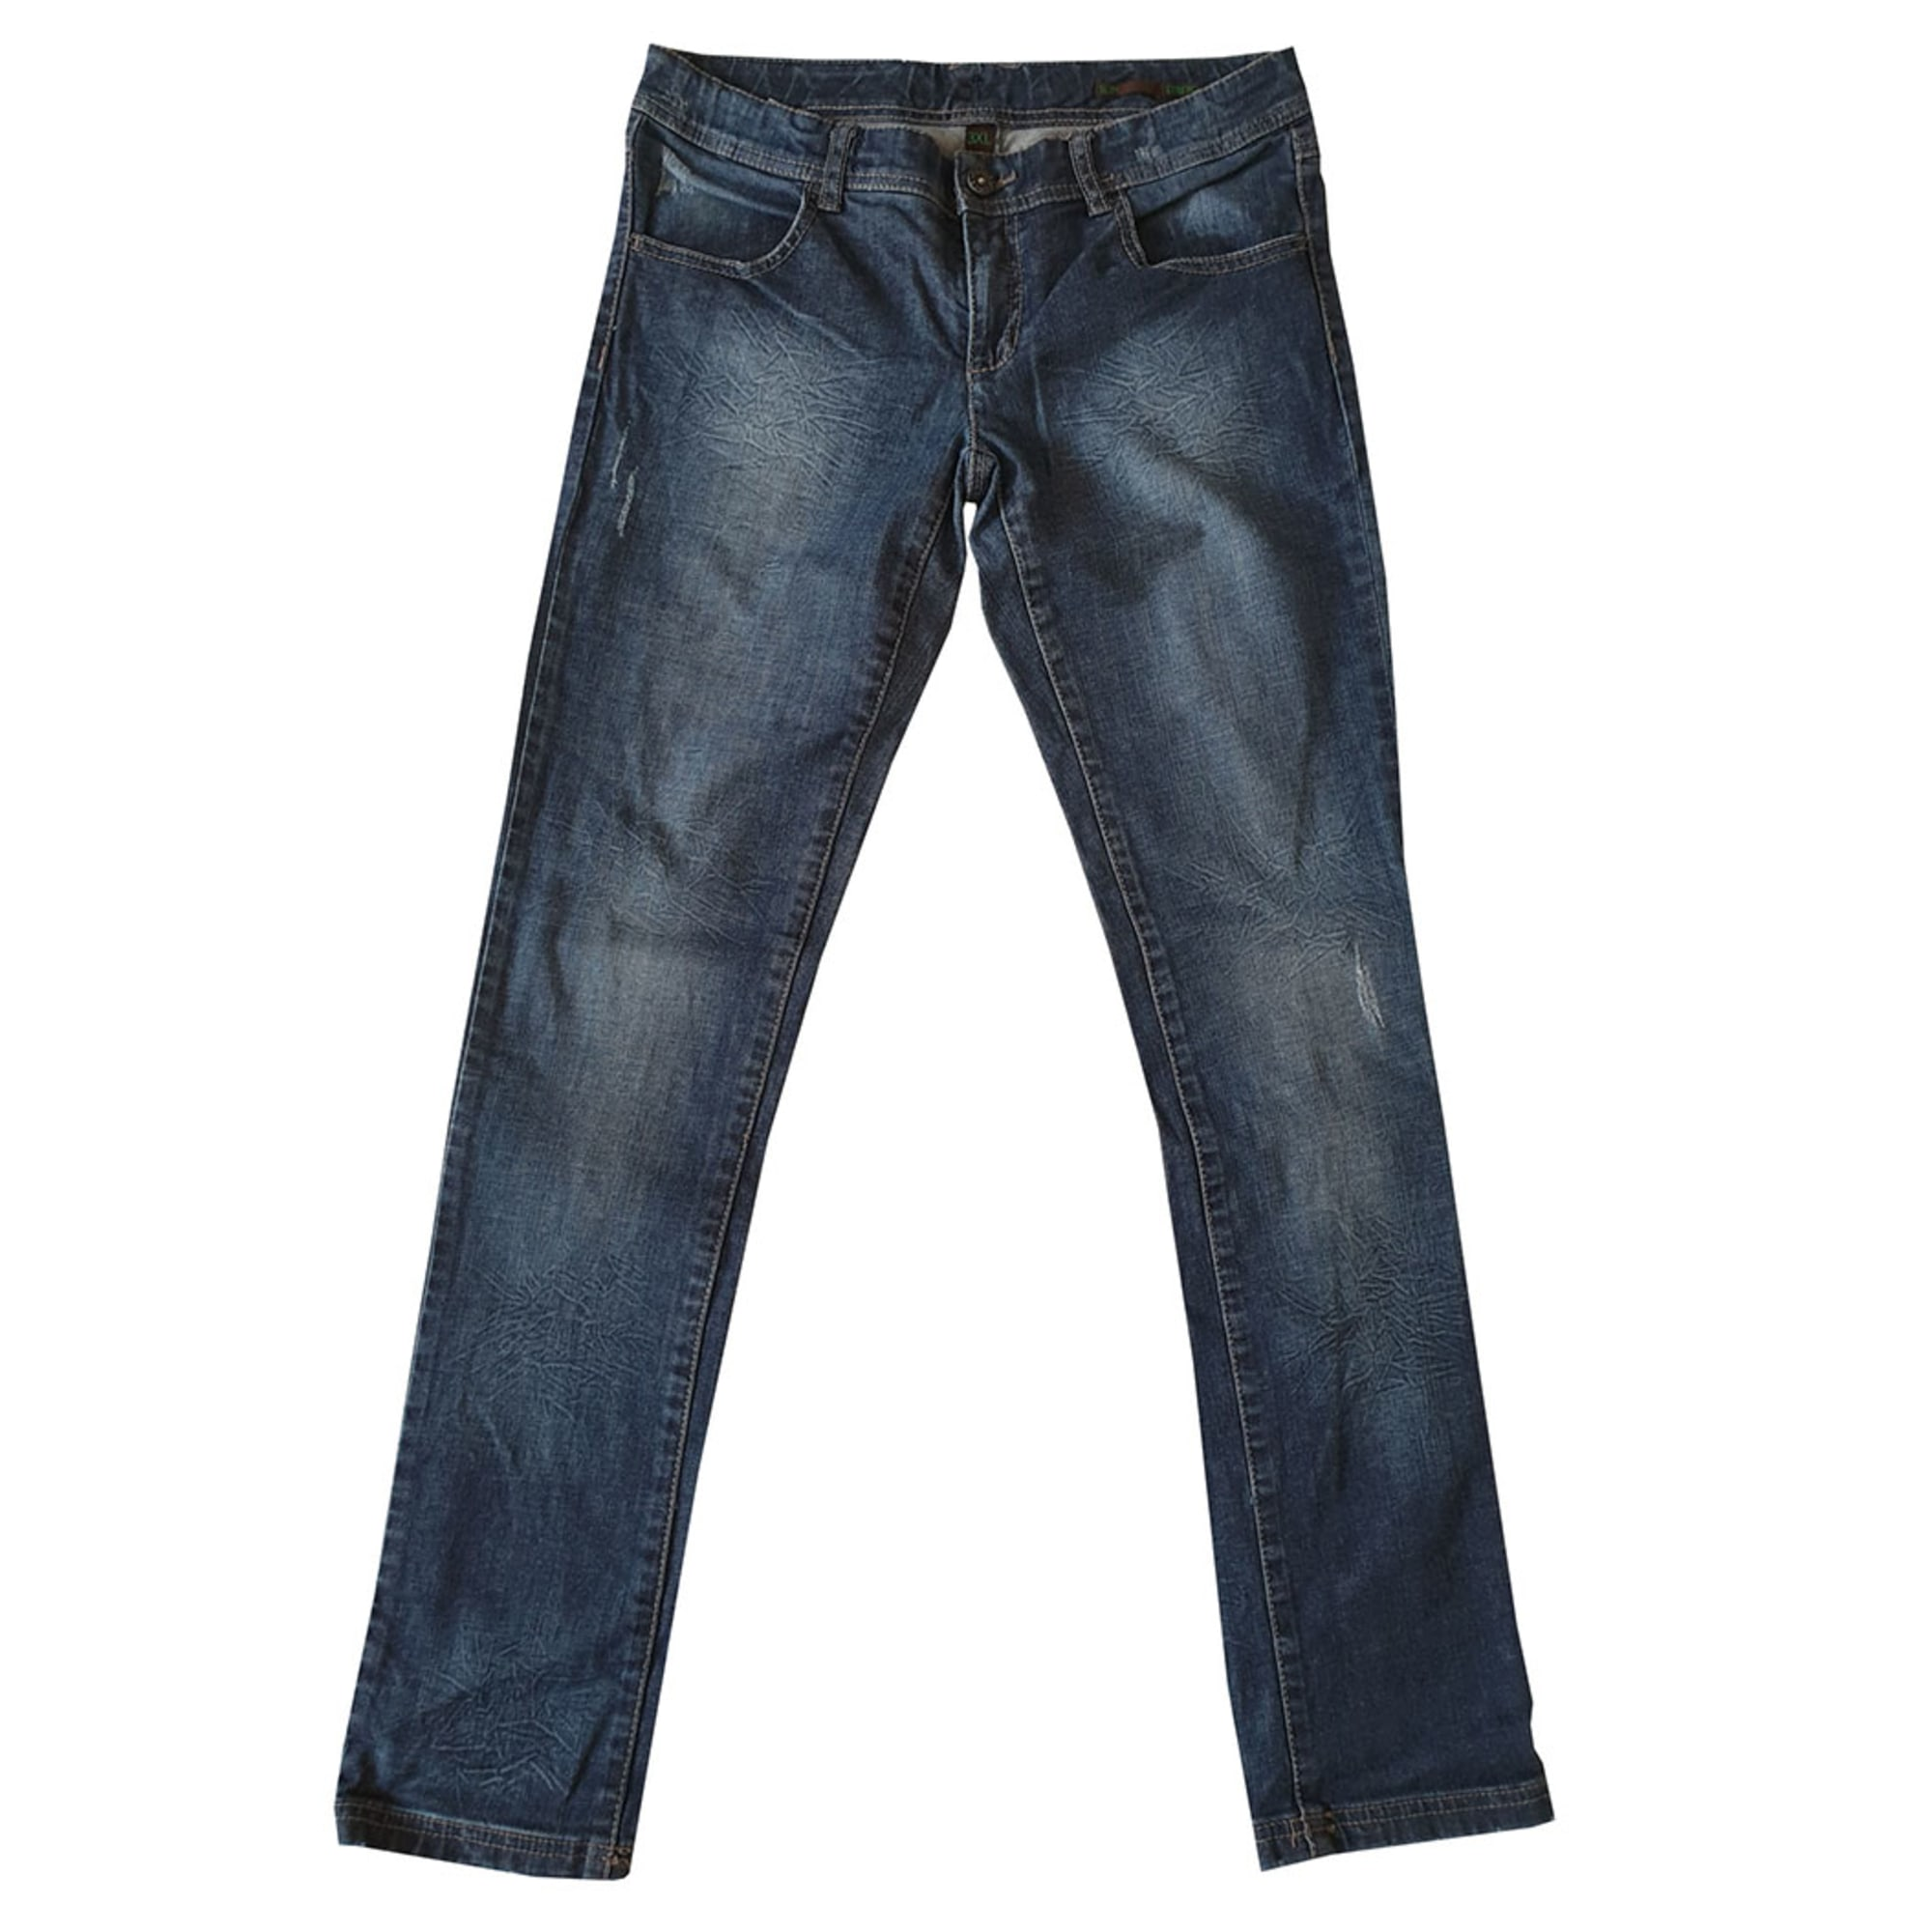 Jean slim  UNITED COLORS OF BENETTON Bleu, bleu marine, bleu turquoise